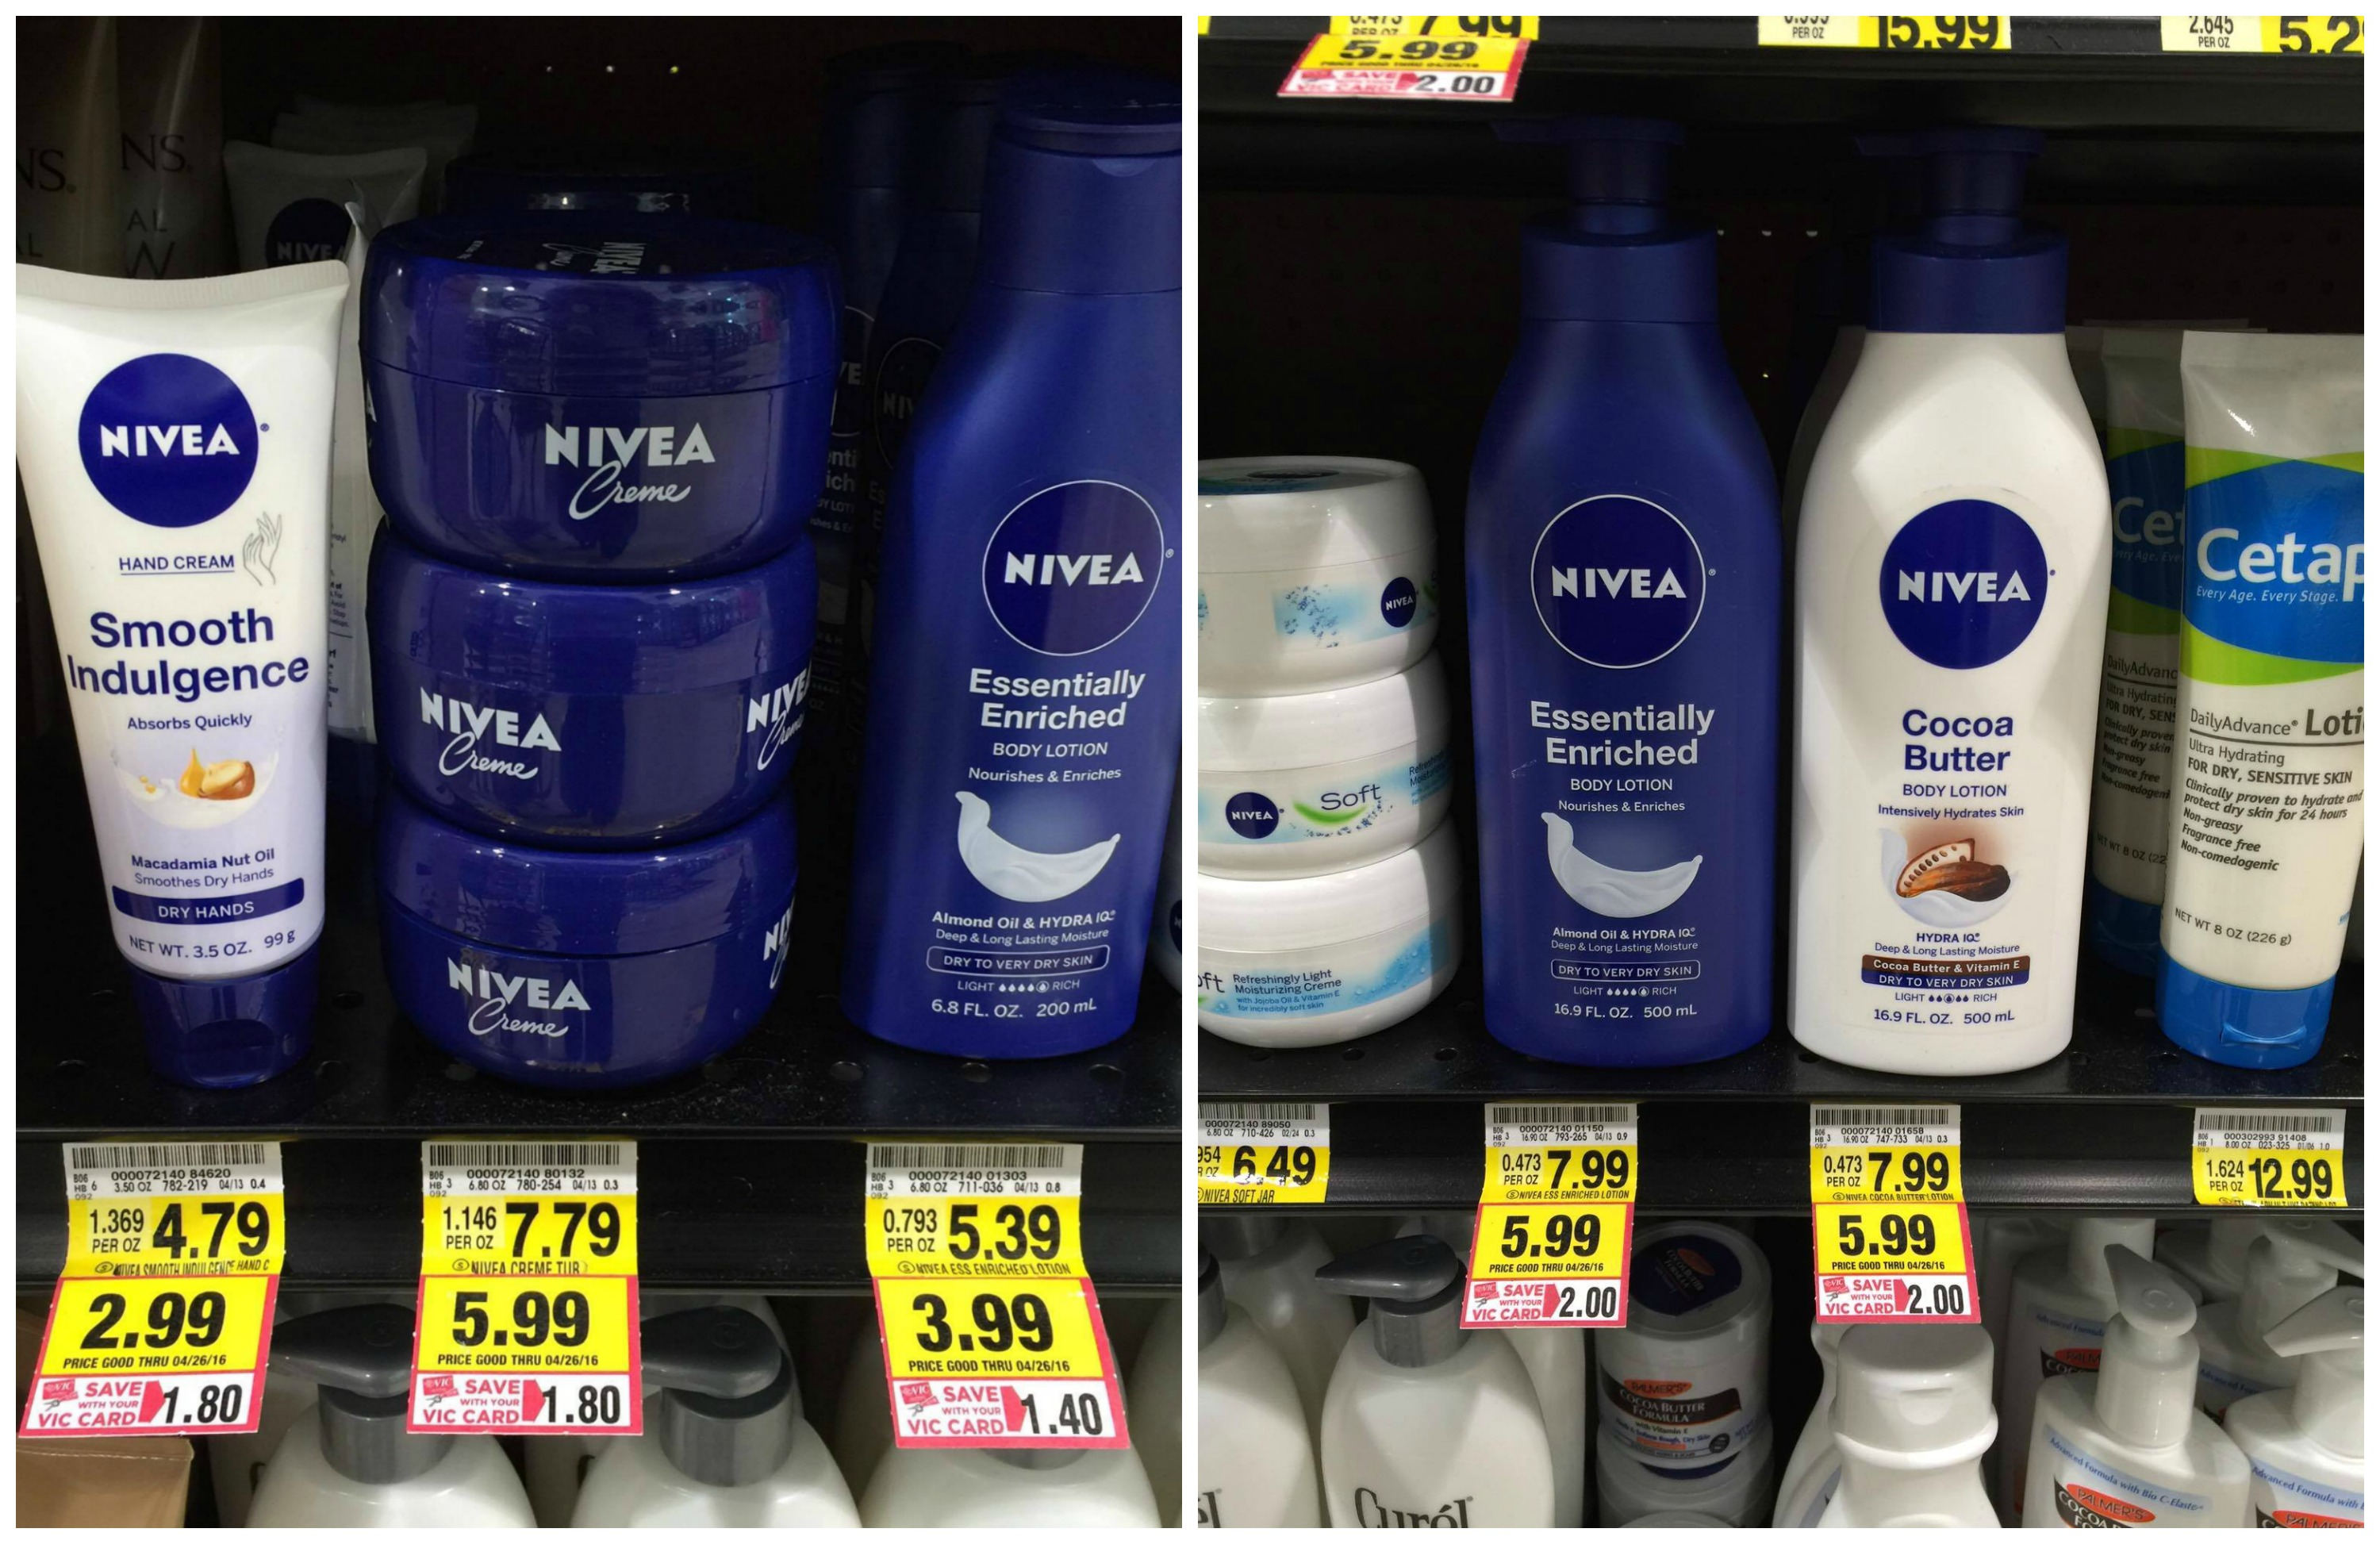 Nivea Lotion Deals {as low as 99¢ at Harris Teeter!} - The Harris Teeter Deals